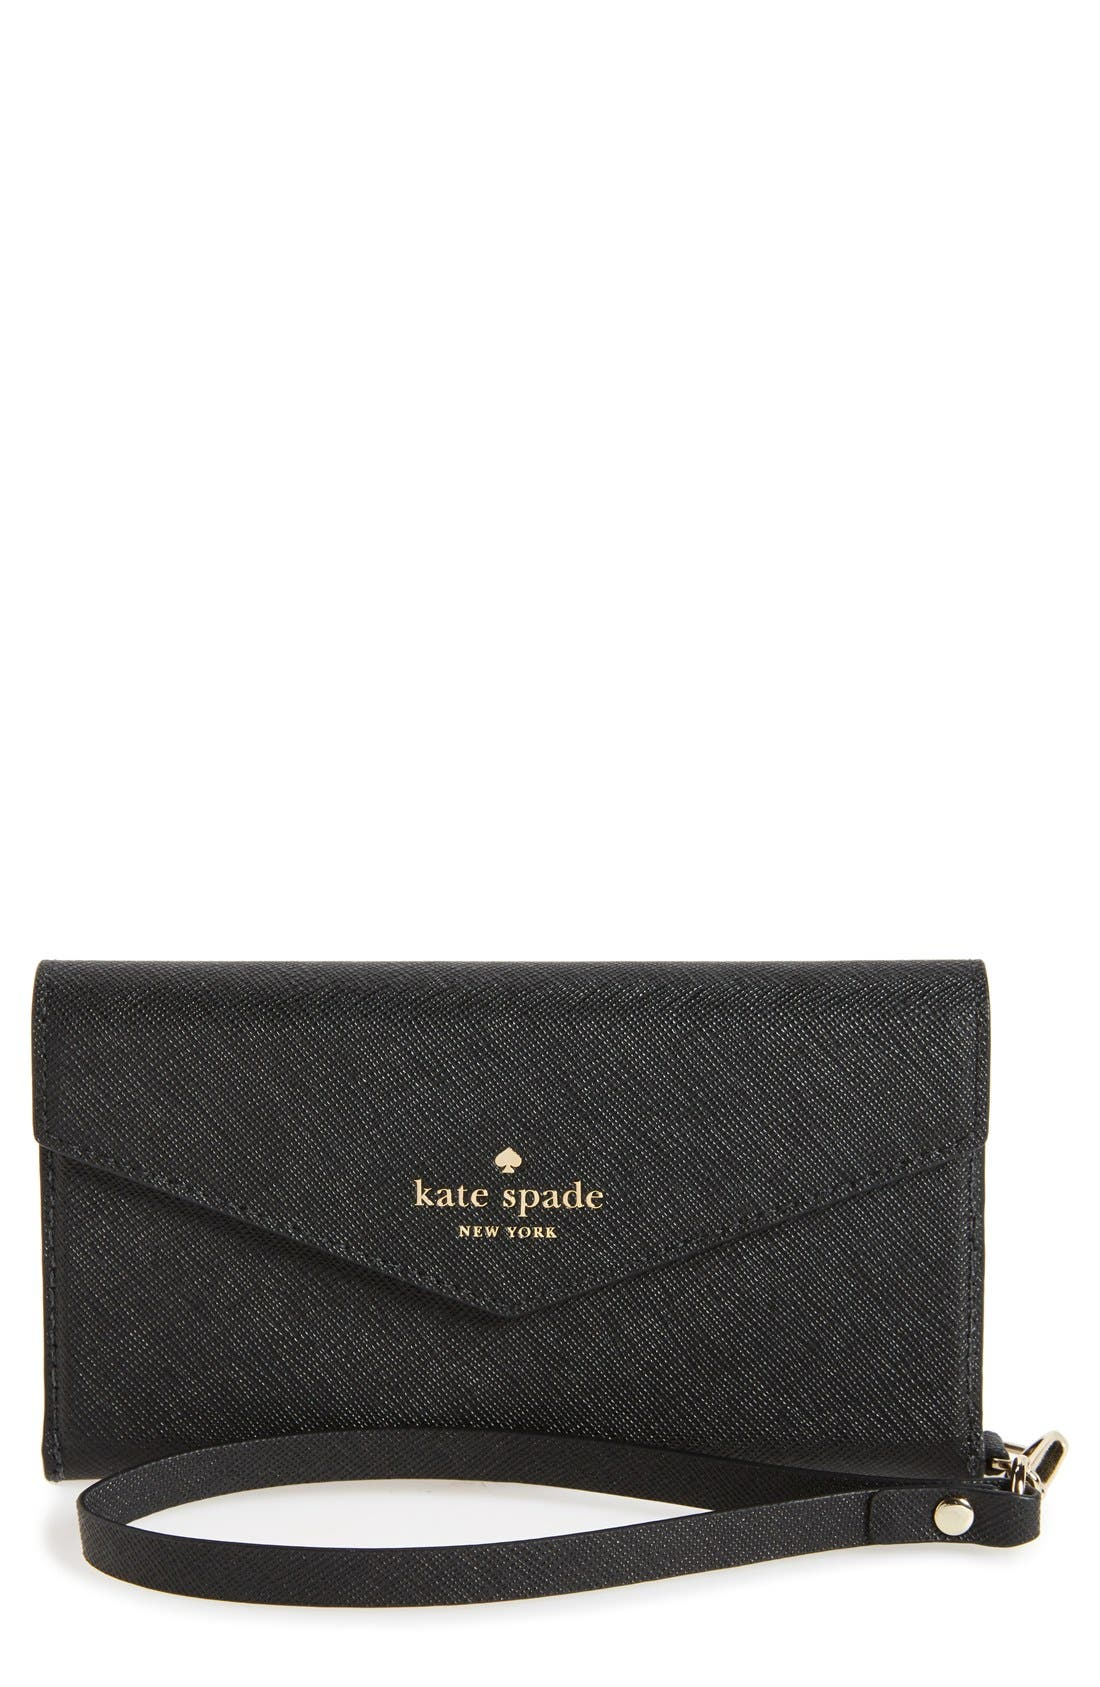 Alternate Image 1 Selected - kate spade new york iPhone 7 & 7 Plus leather wristlet